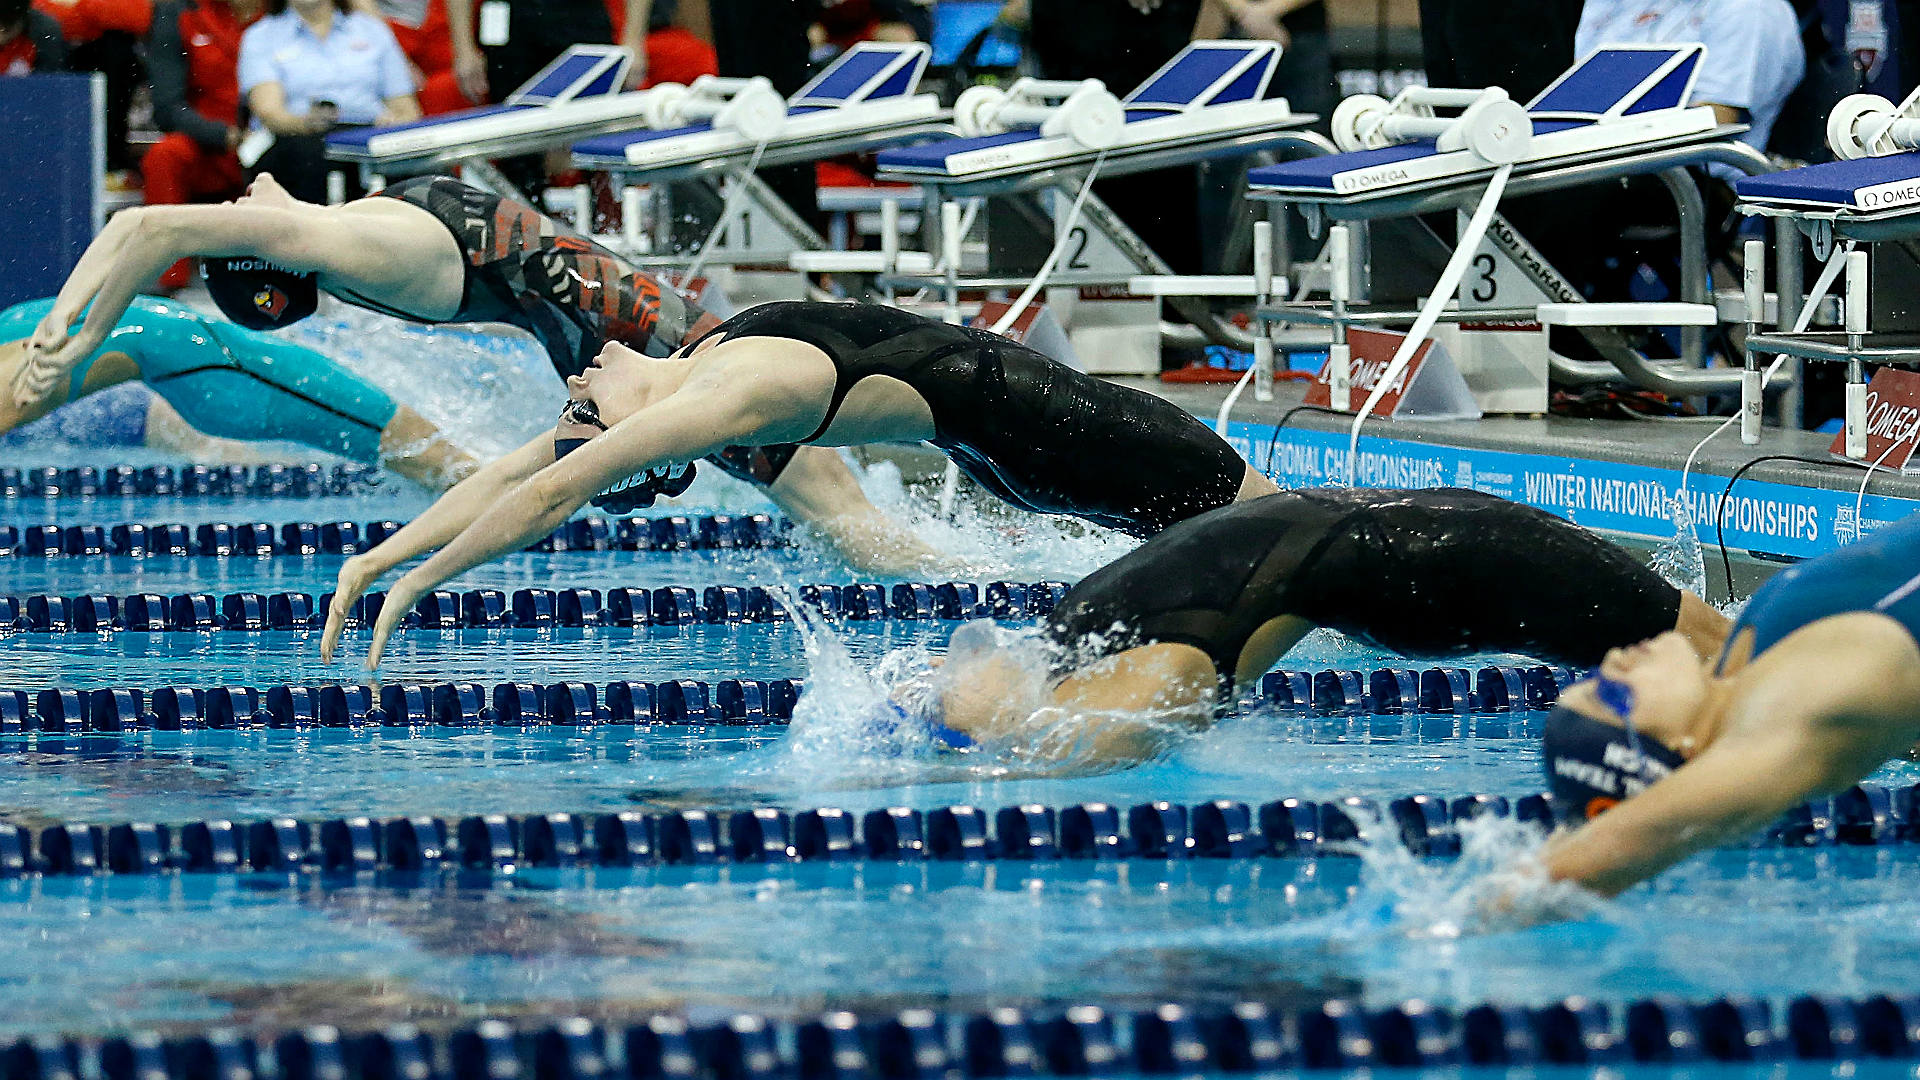 USA Swimming ignored claims of sexual abuse for decades, report indicates